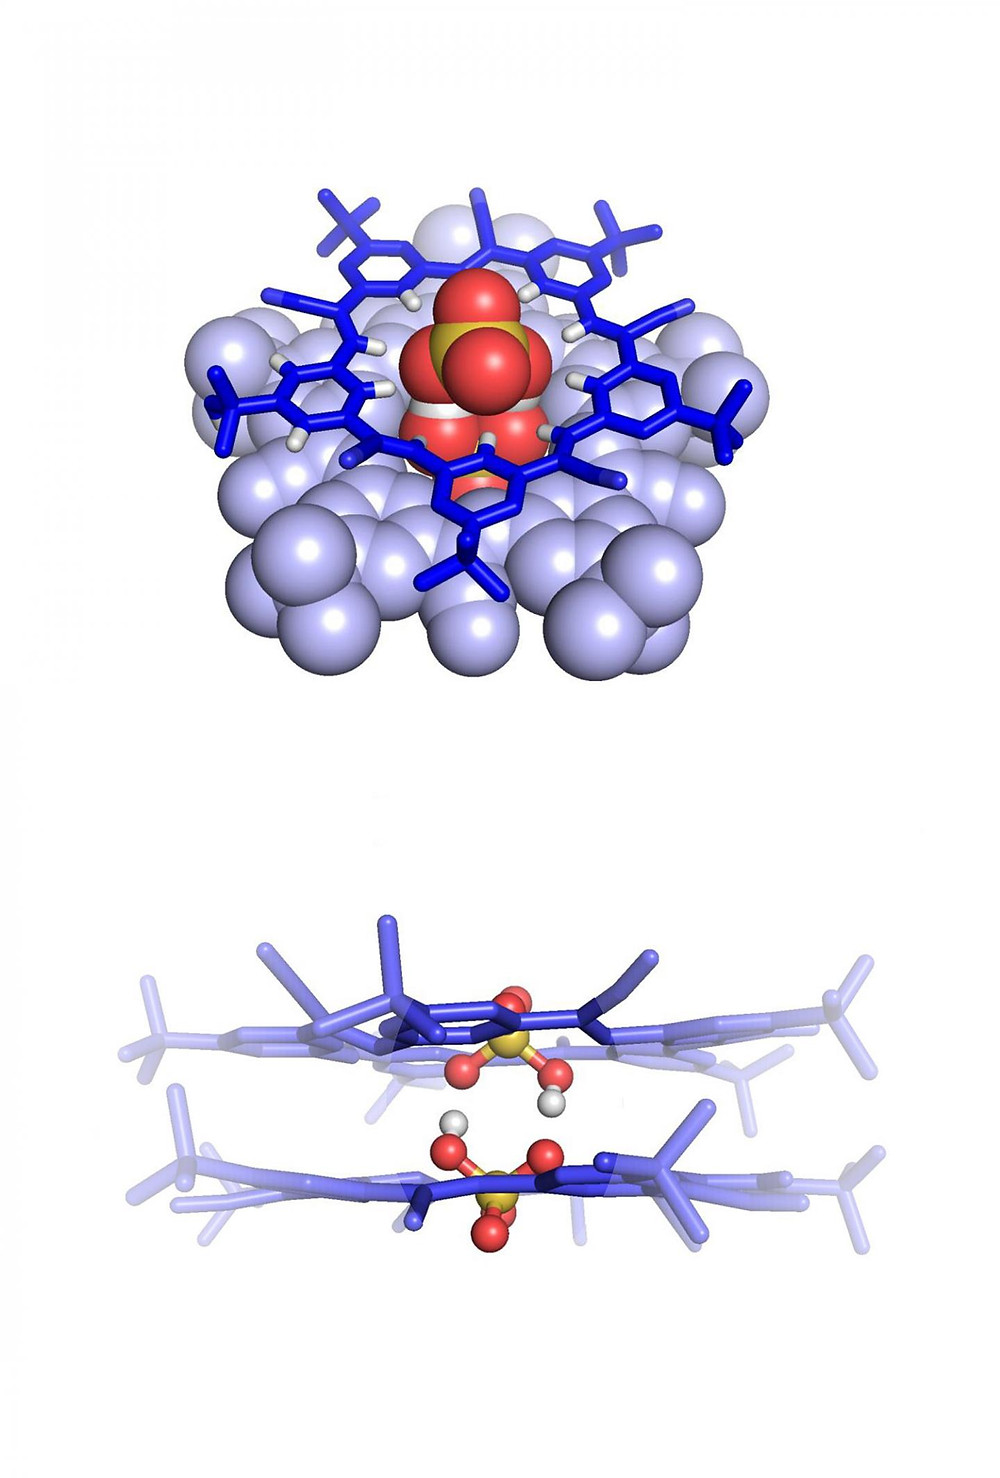 The bisulfate dimer as seen from the top down (upper image) and side (lower image). The two negatively charged molecules are connected by weak bonds made possible through encapsulation inside a pair of a star-shaped cyanostar macrocycles (blue), a molecule previously developed by Flood's lab at IU. @ Indiana University